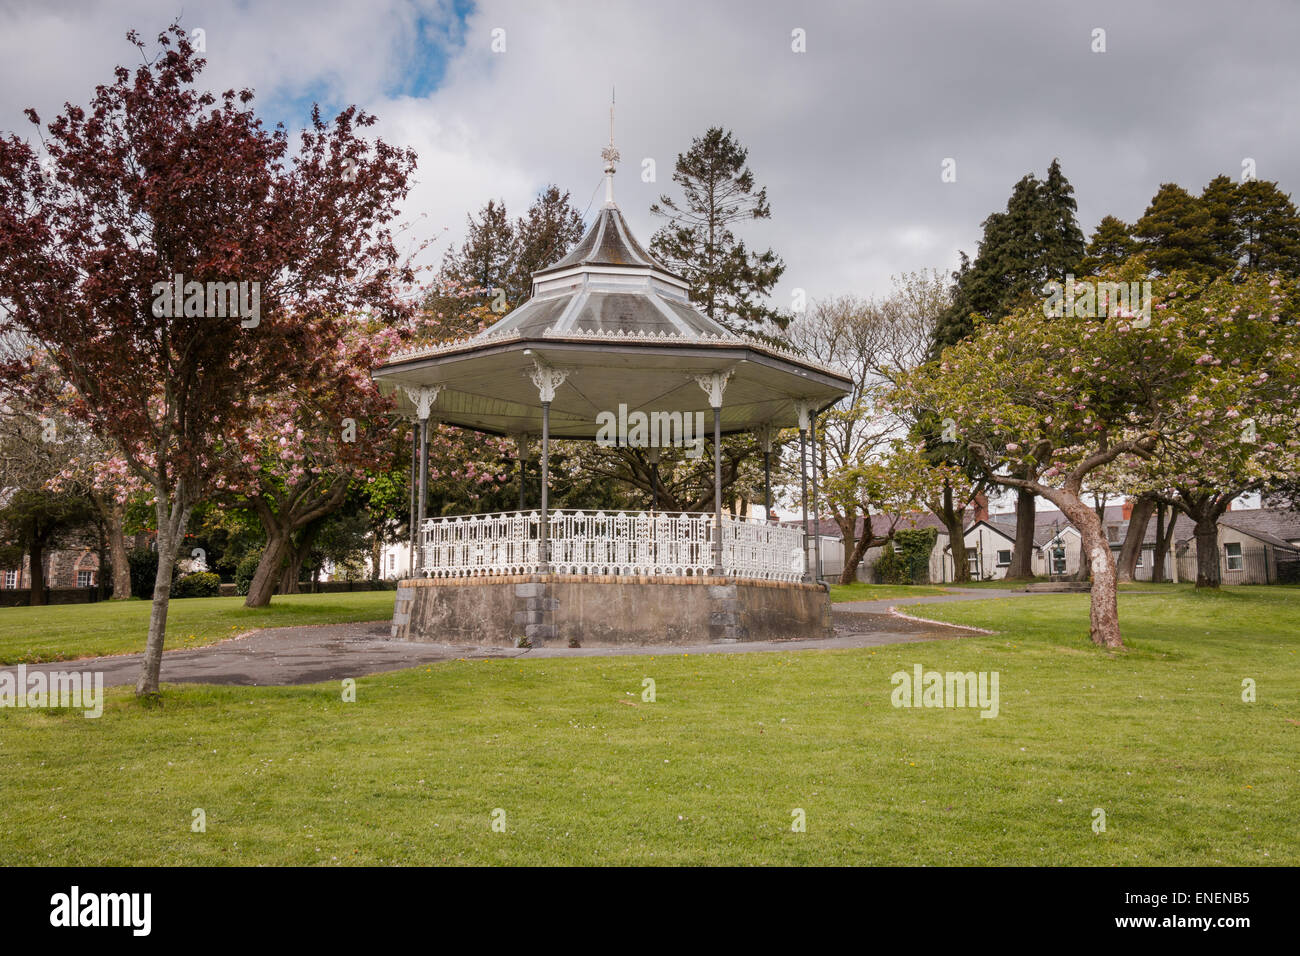 A bandstand situated in a peaceful park - Stock Image